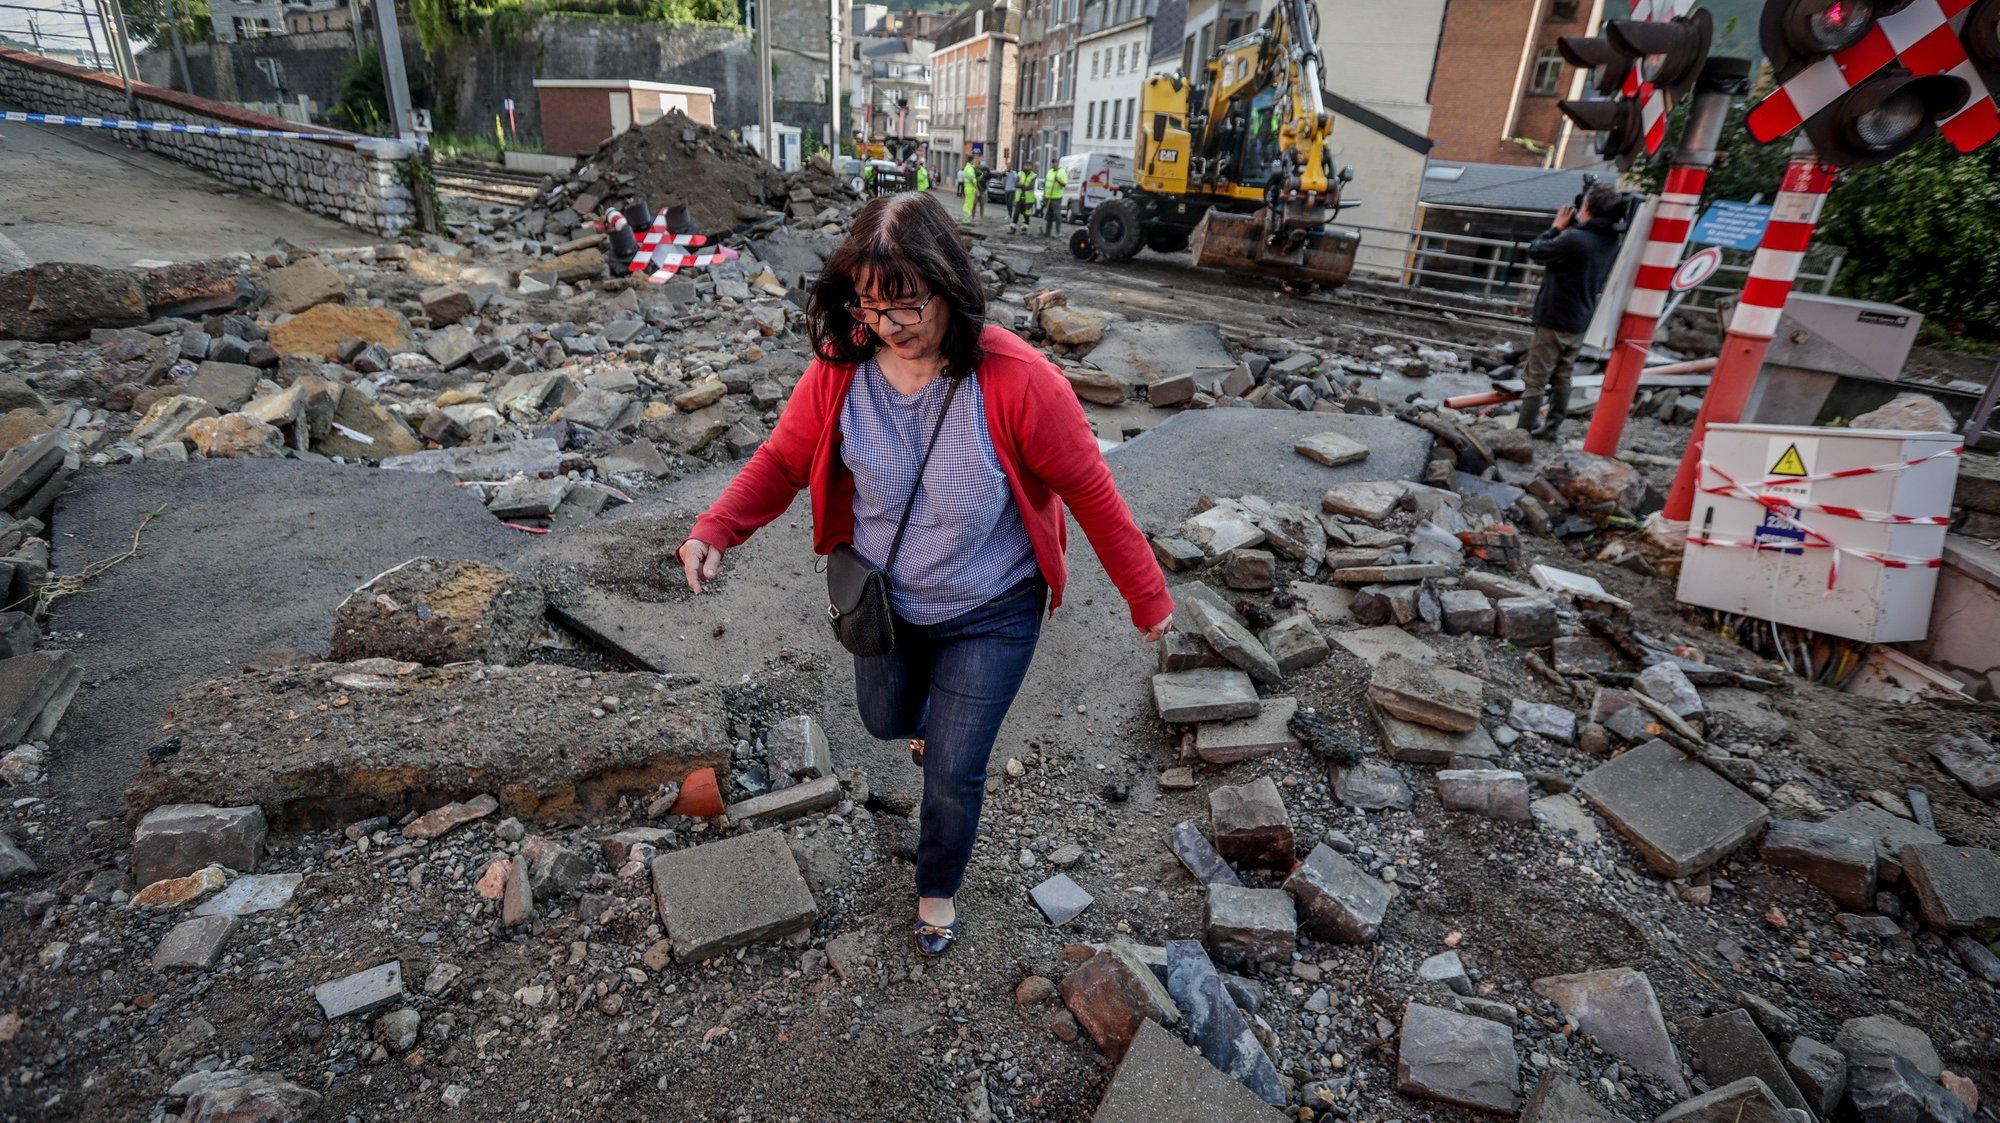 epa09364158 A woman walks in the rubble after flooding due to heavy rains on 24 July, in Dinant, Belgium, 25 July 2021. Heavy rains caused widespread damage and flooding in parts of Belgium and across central Europe in the night of 14/15 July. Dozens have died and many remain unaccounted for. On July 24, more rain fell over southern Belgium.  EPA/STEPHANIE LECOCQ